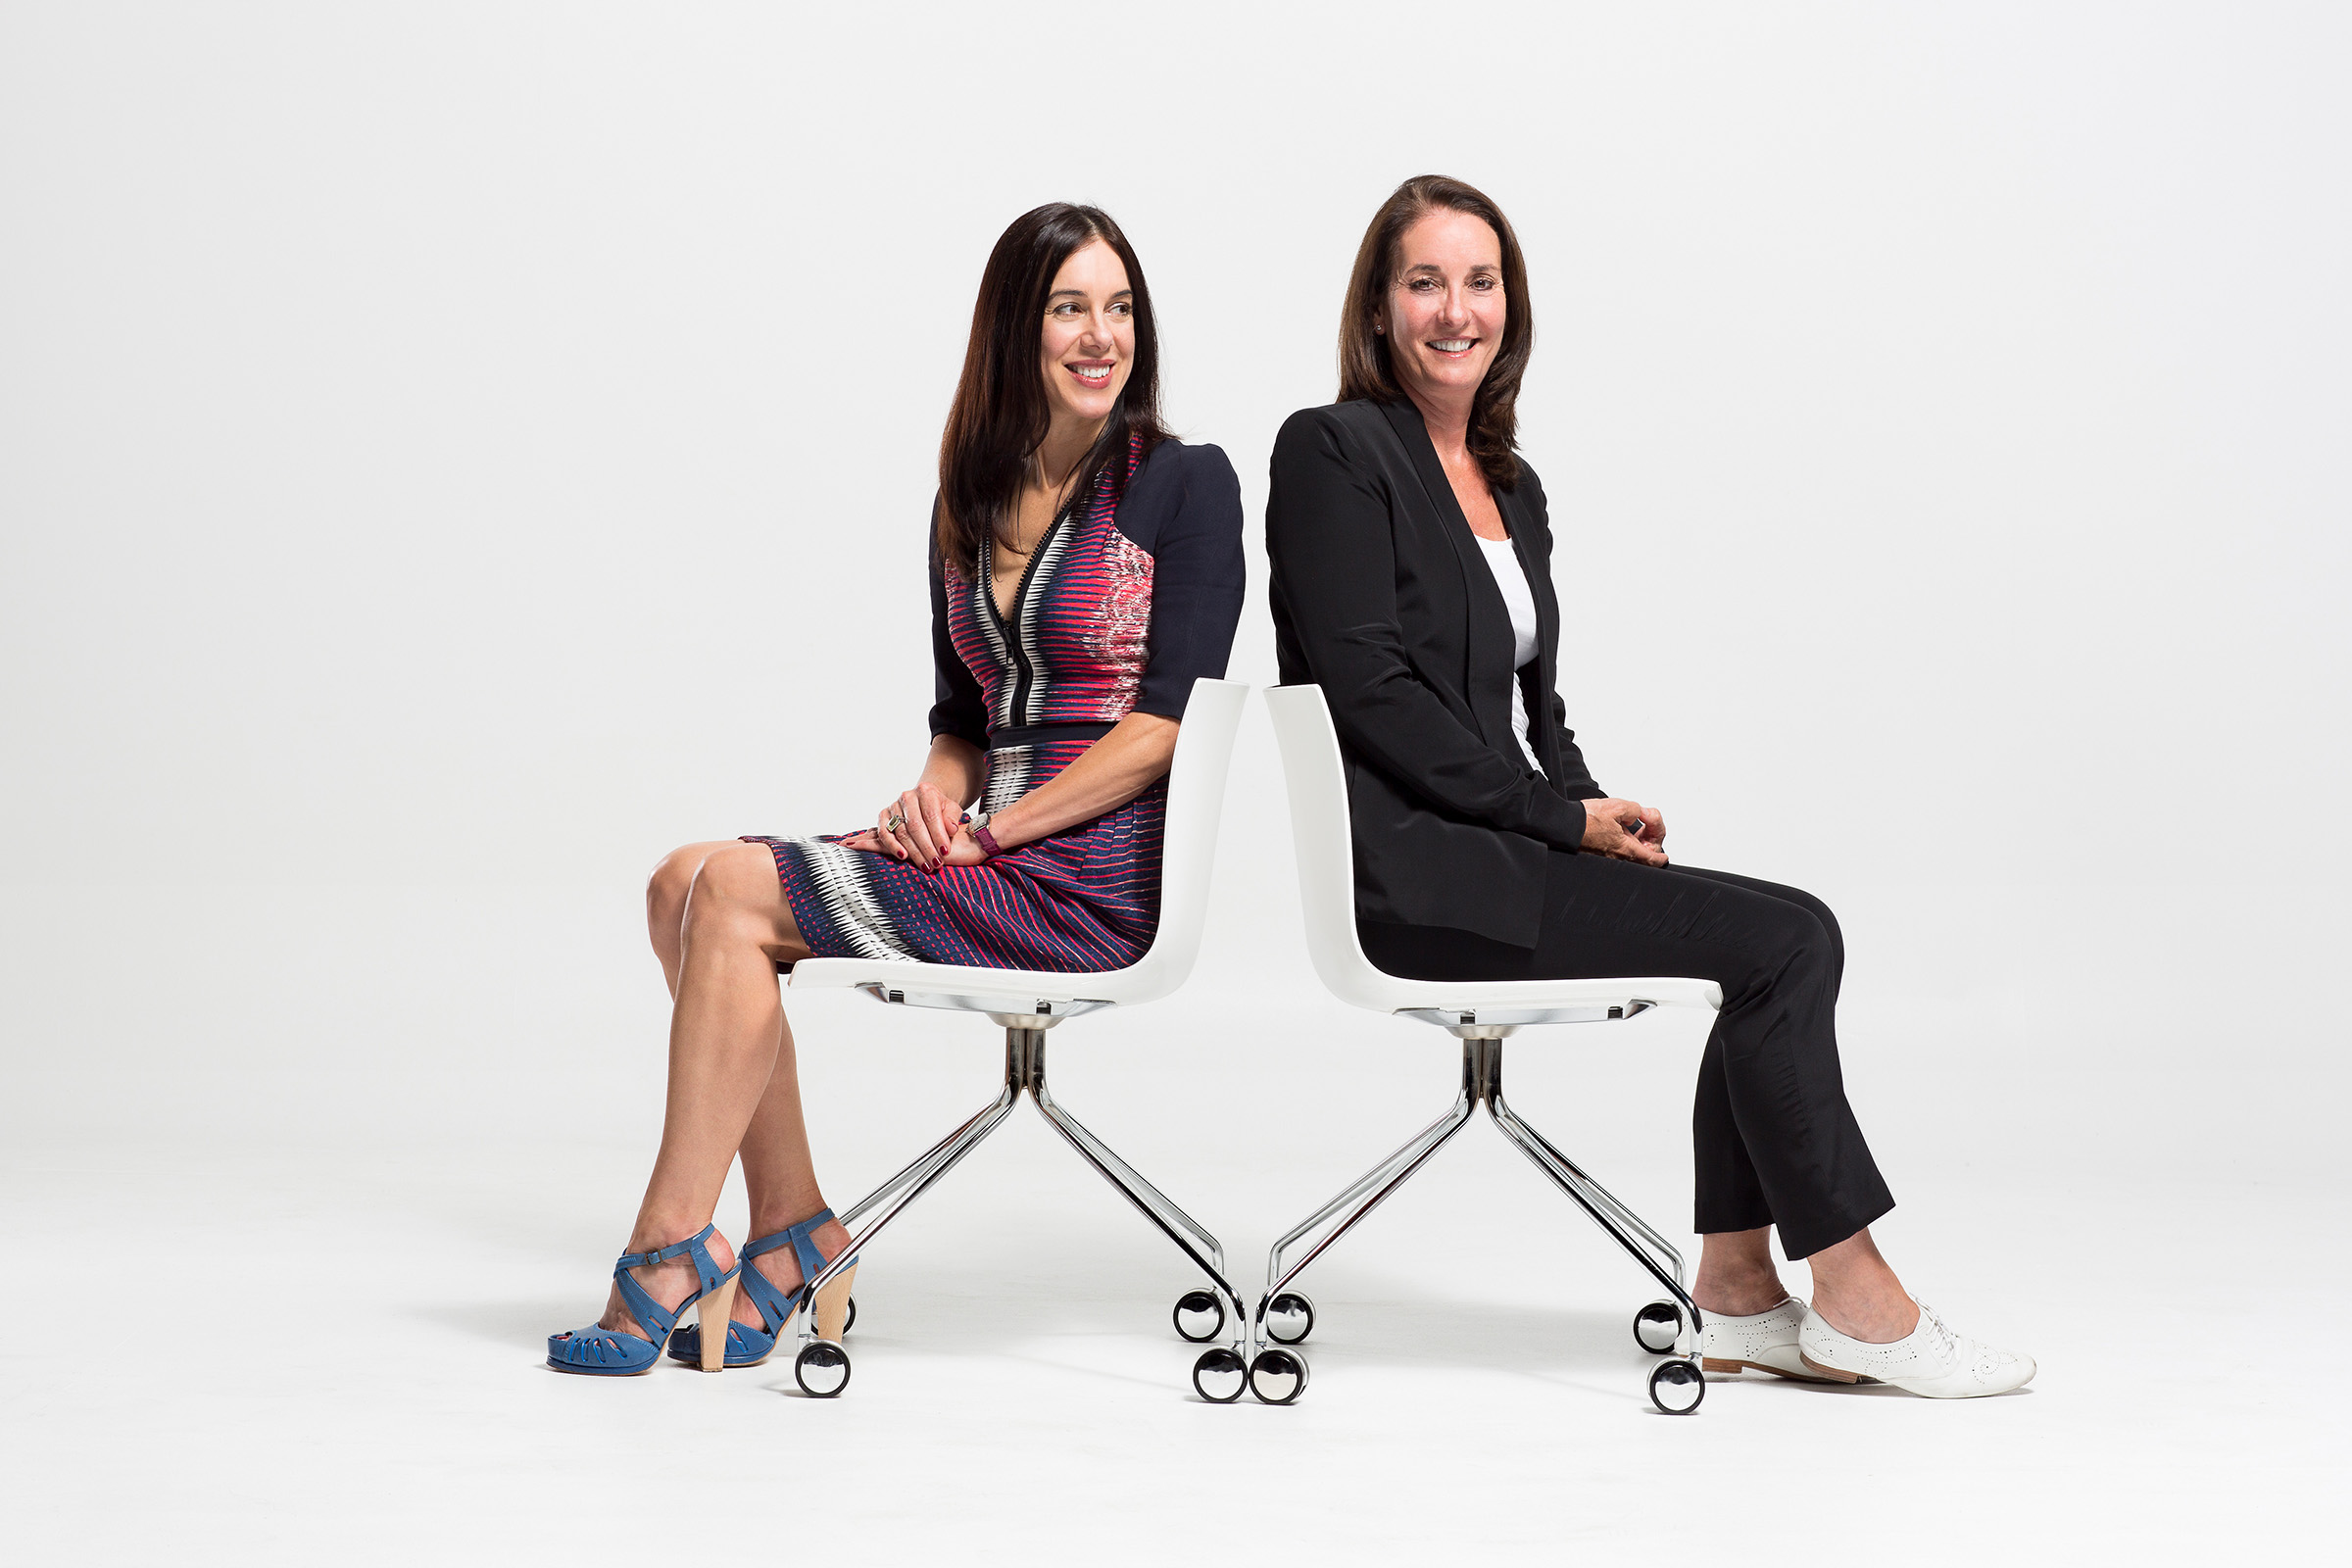 Corporate editorial studio photography REINSW 2 females seated white chairs white background